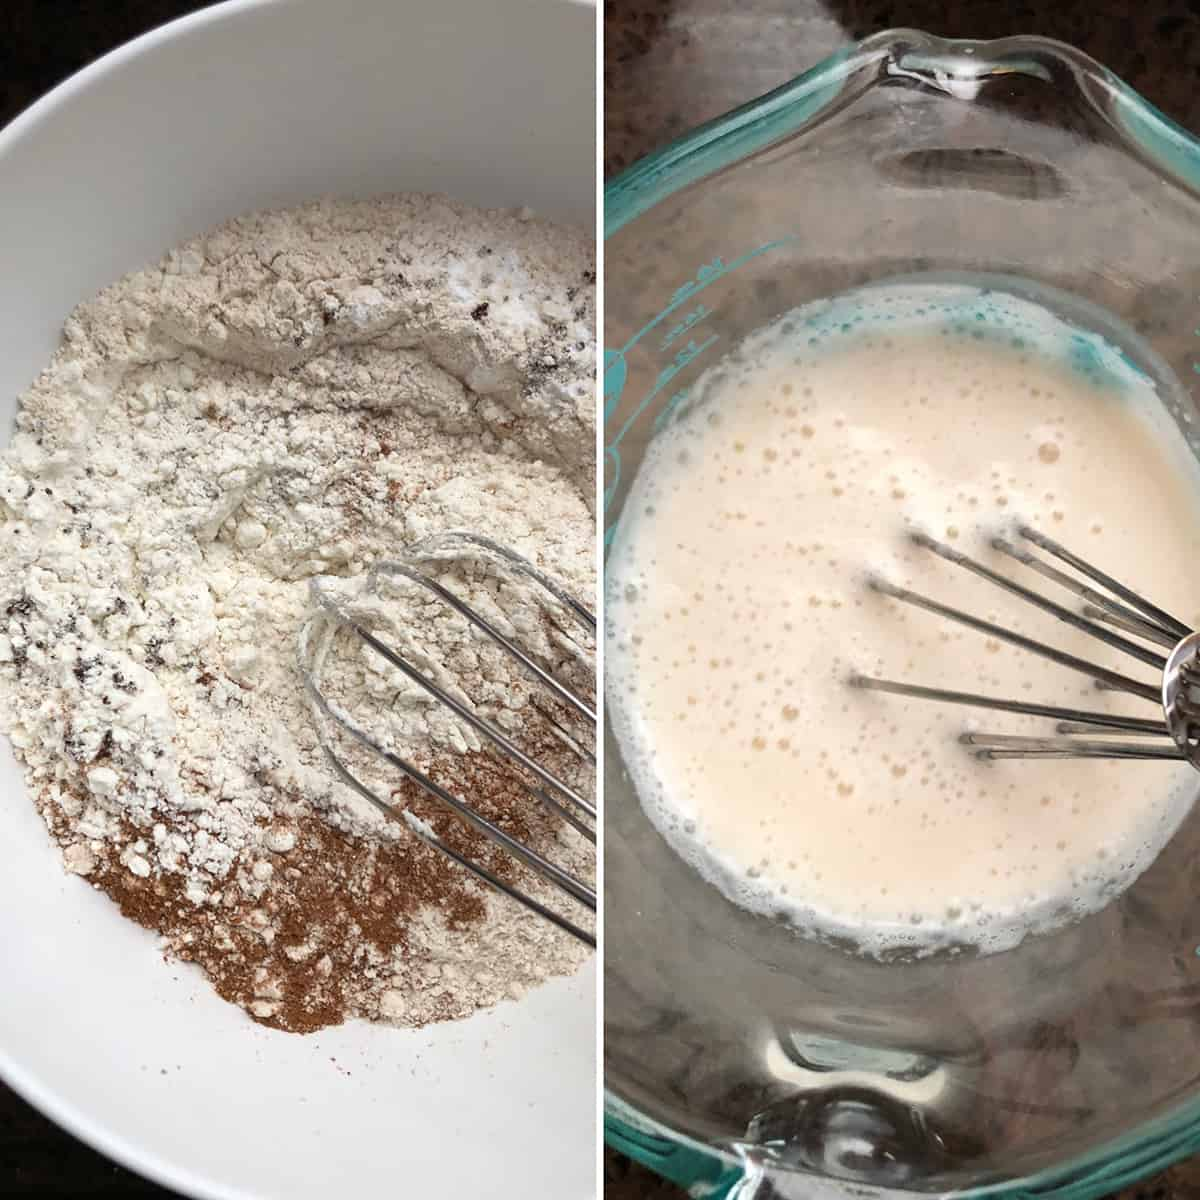 Side by side photos of wet and dry ingredients ready to be mixed.